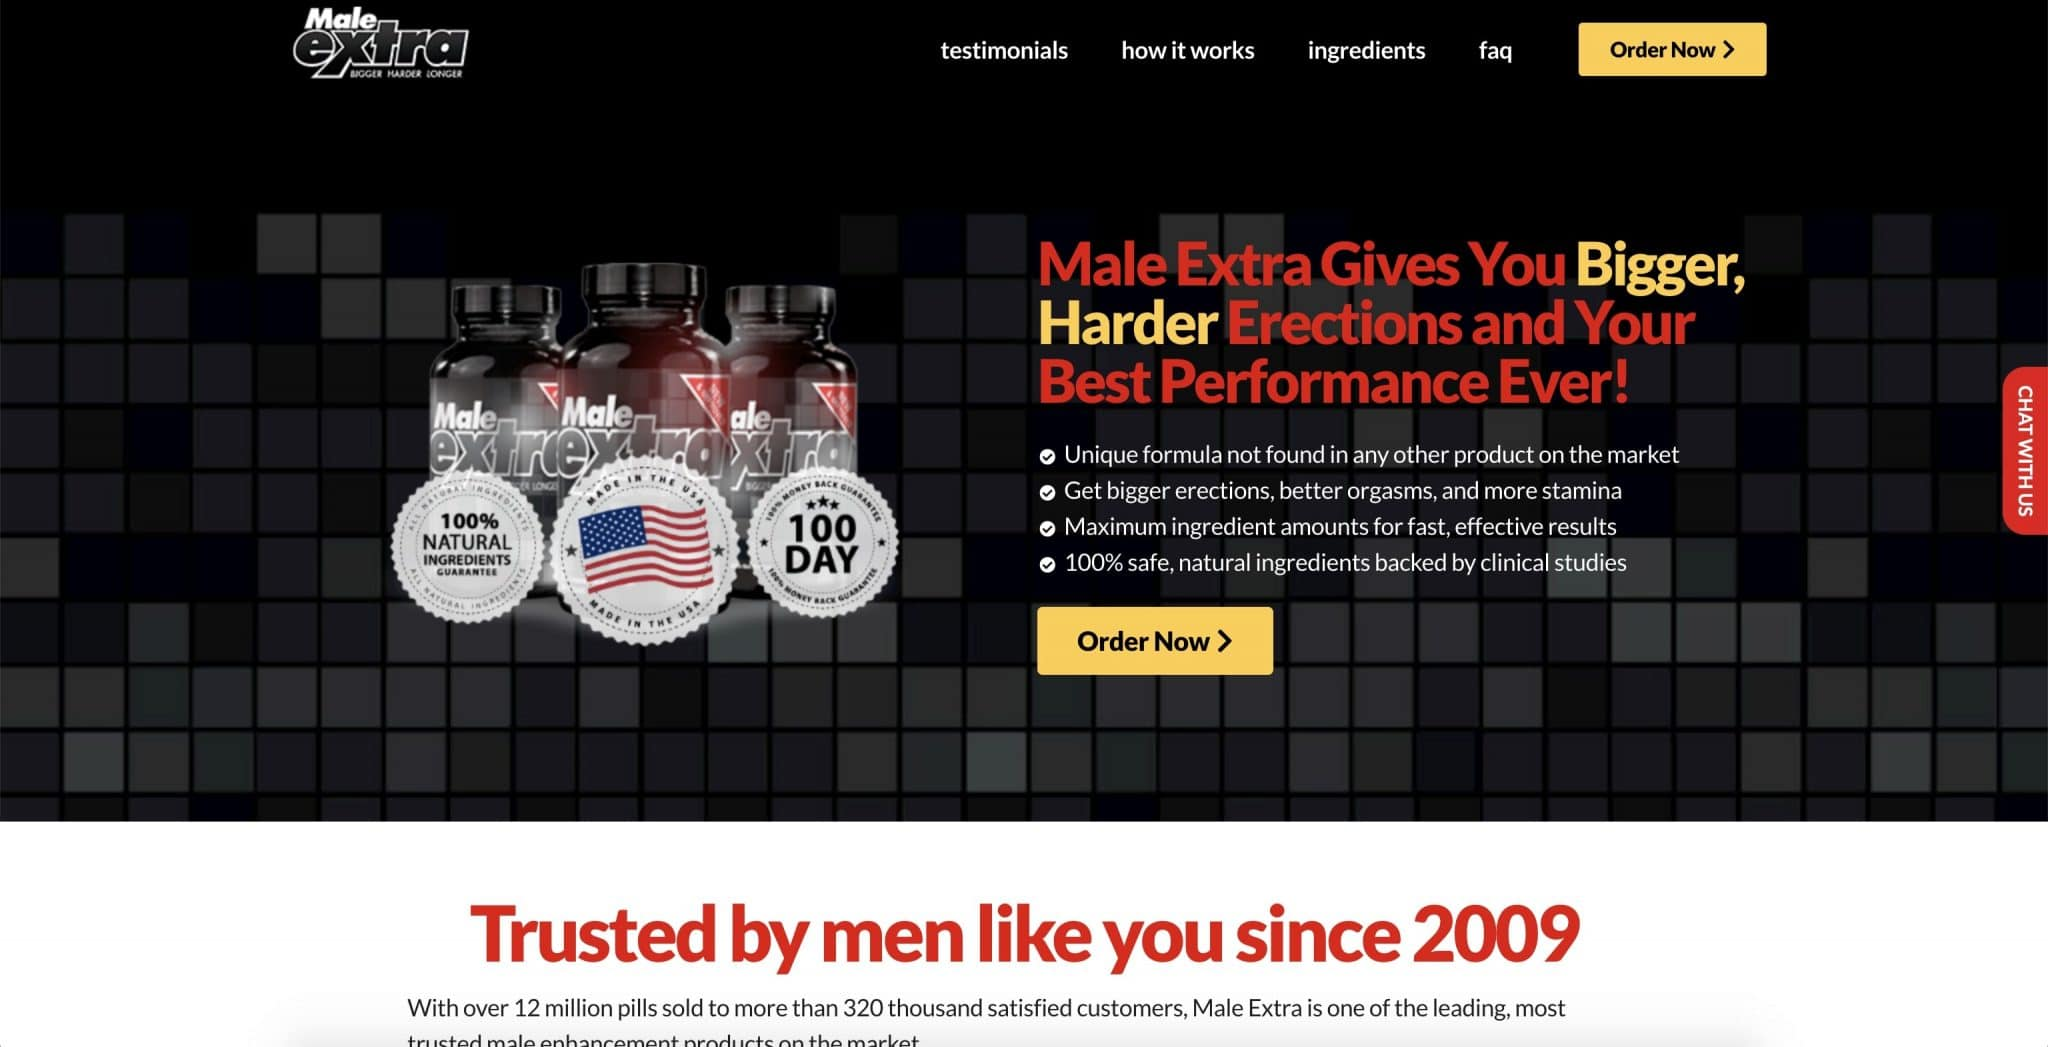 Screenshot of Male Extra website.